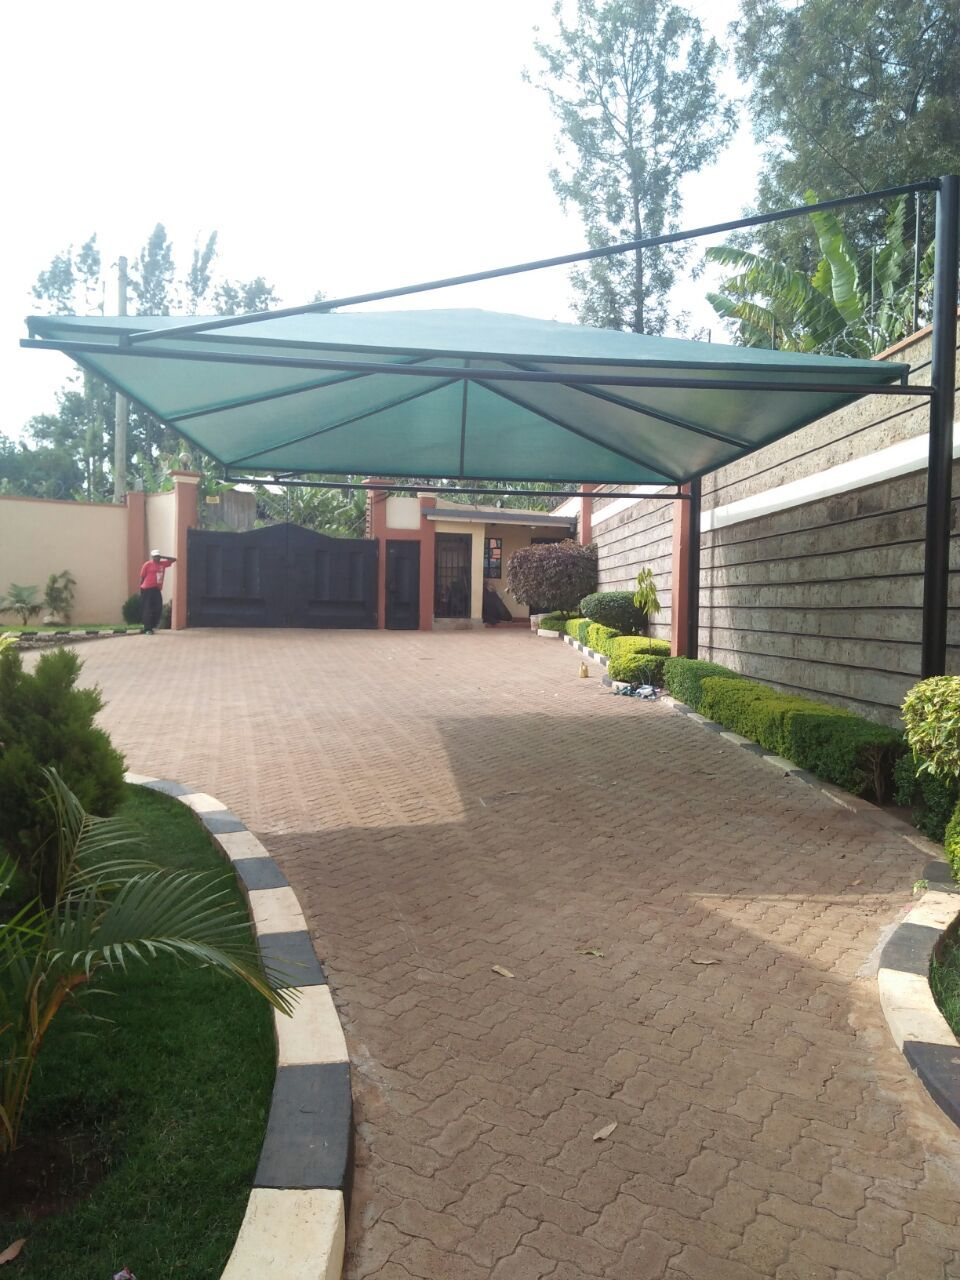 Services Leading car parking shades, carpets, shade